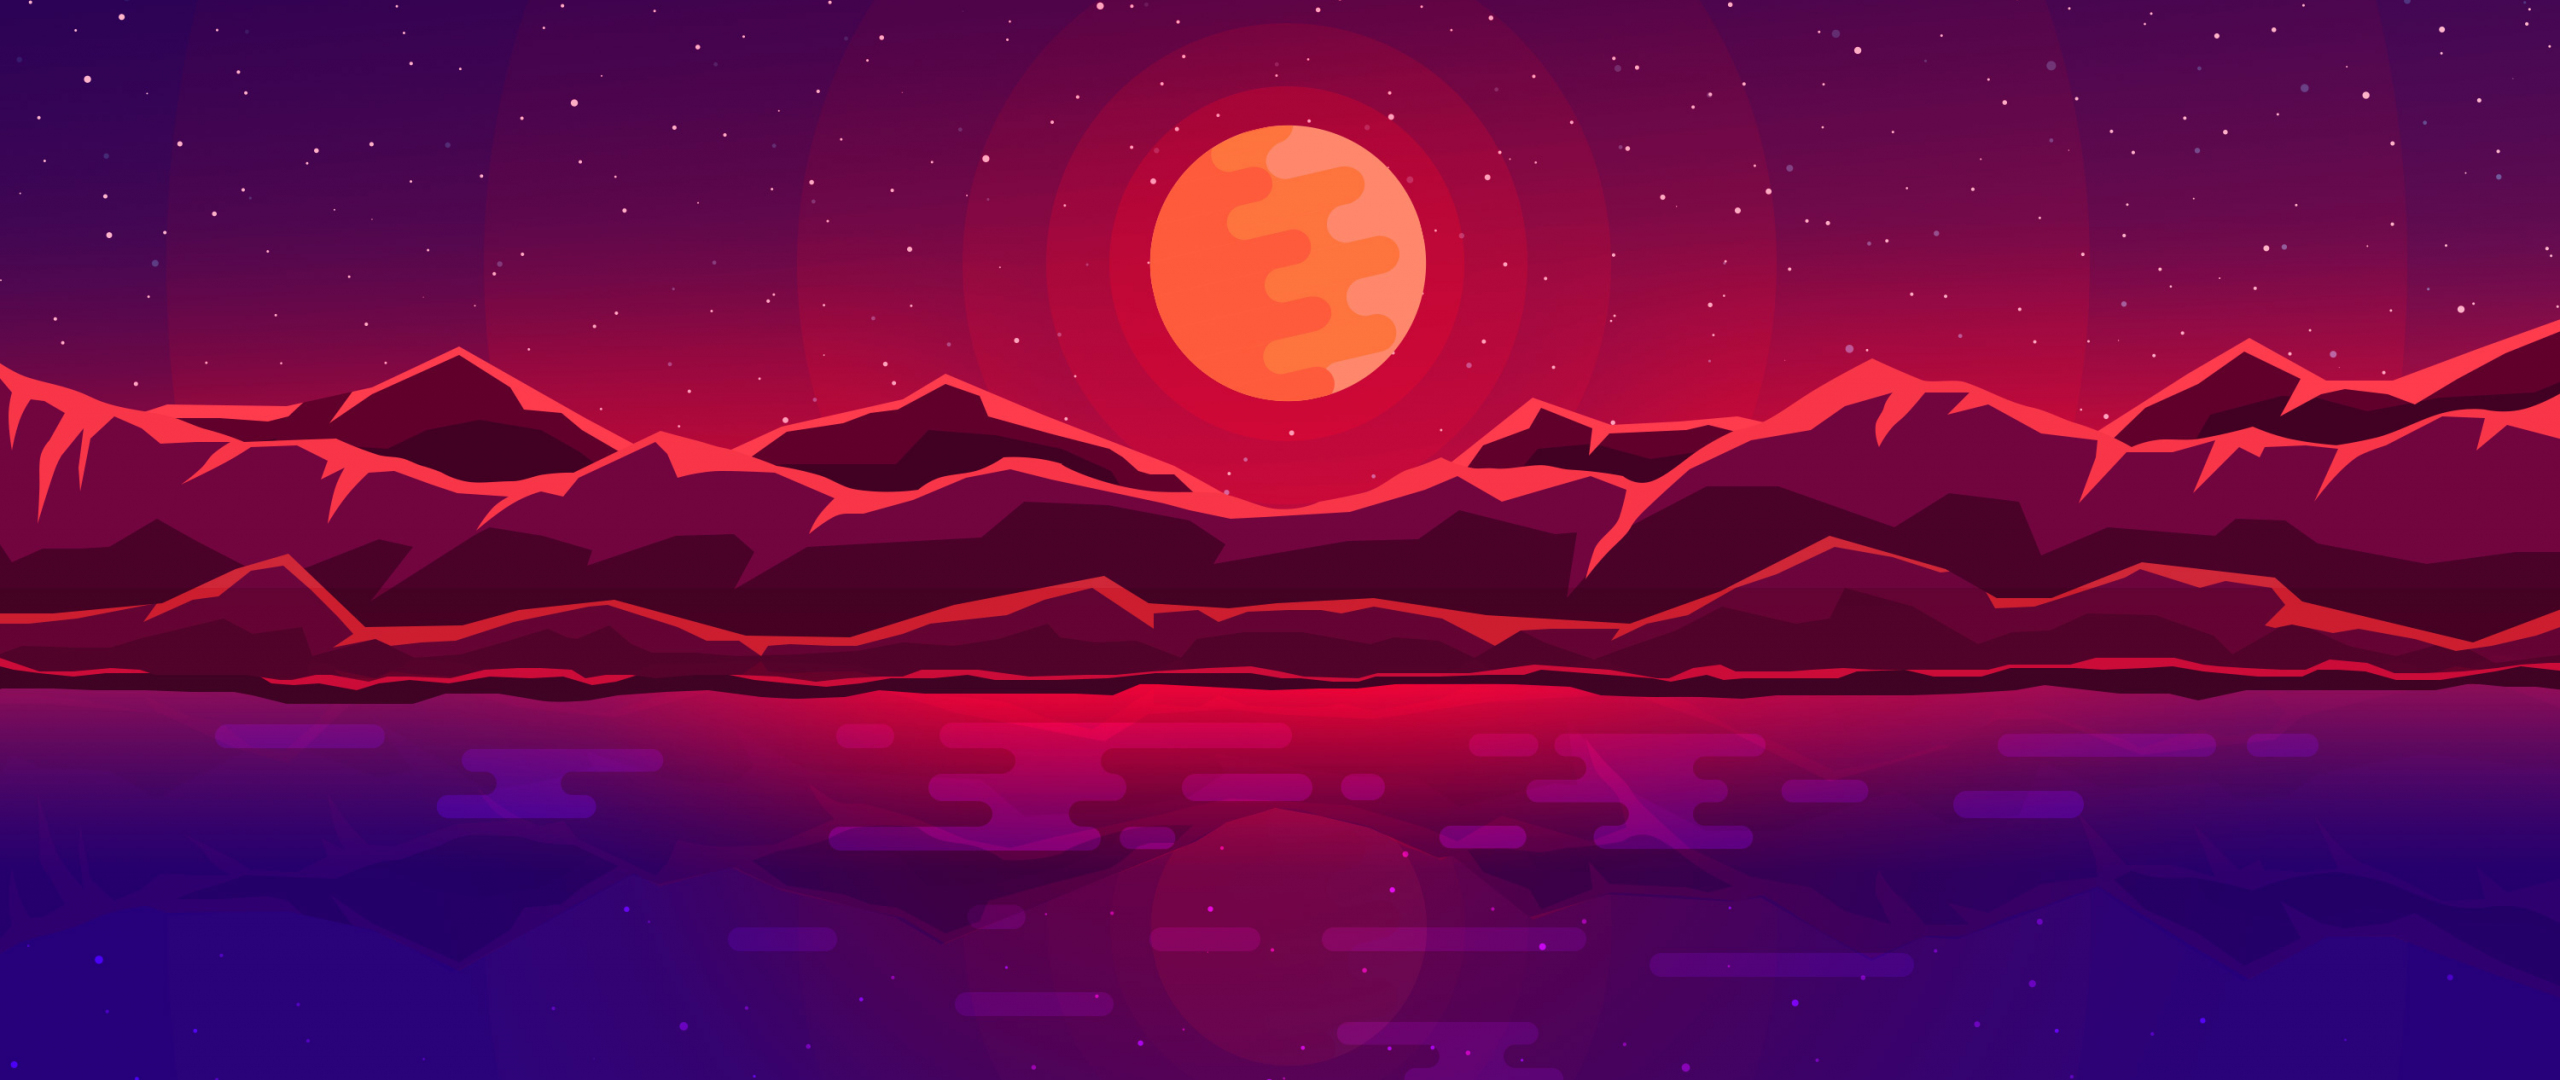 Moon rays, red space, sky, abstract, mountains, 2560x1080 wallpaper